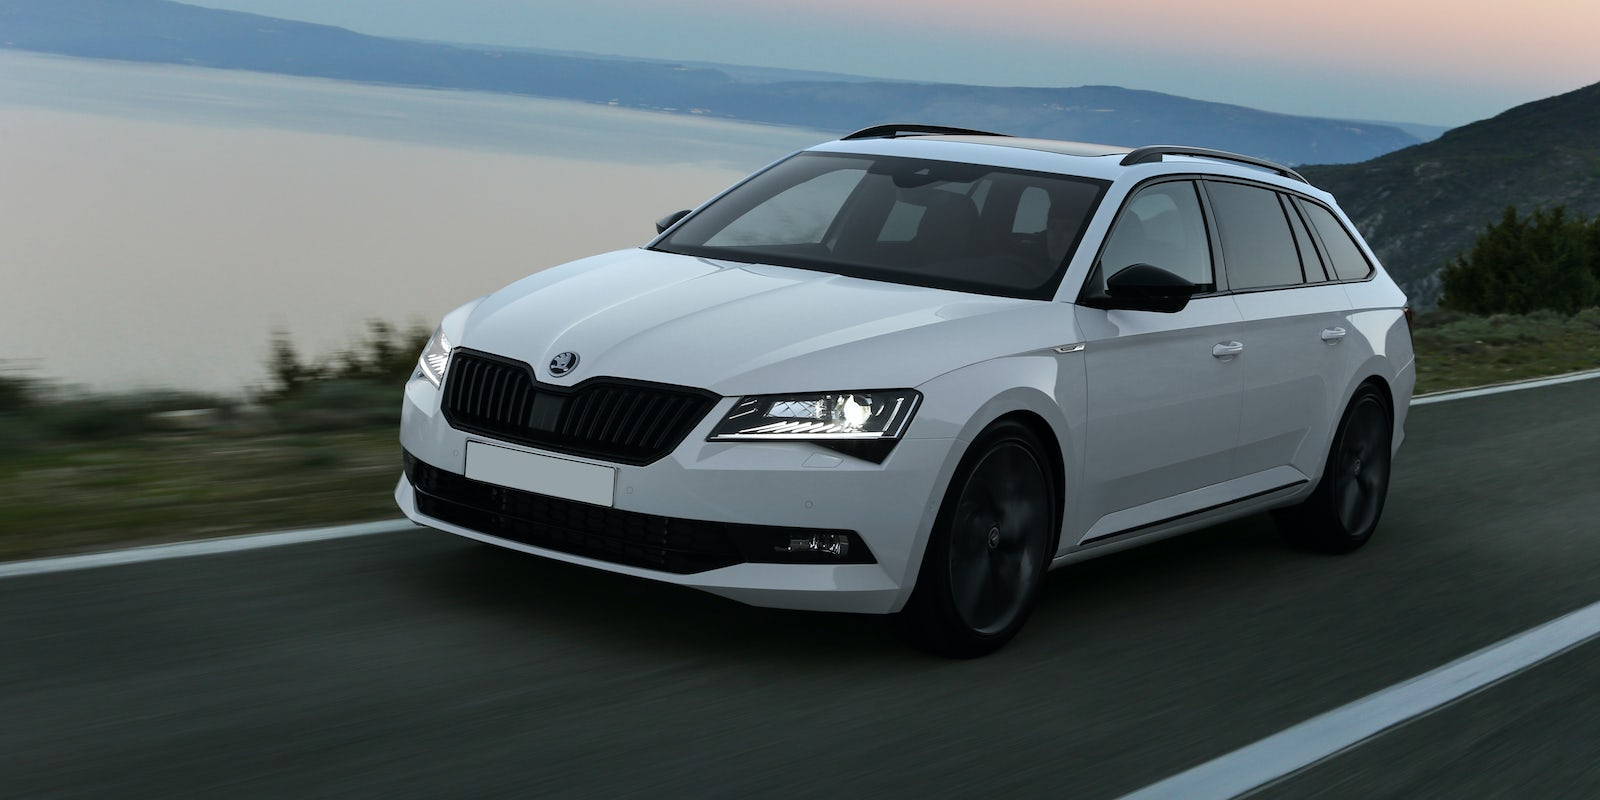 Skoda superb estate 1 4 tsi review autocar - 11 15